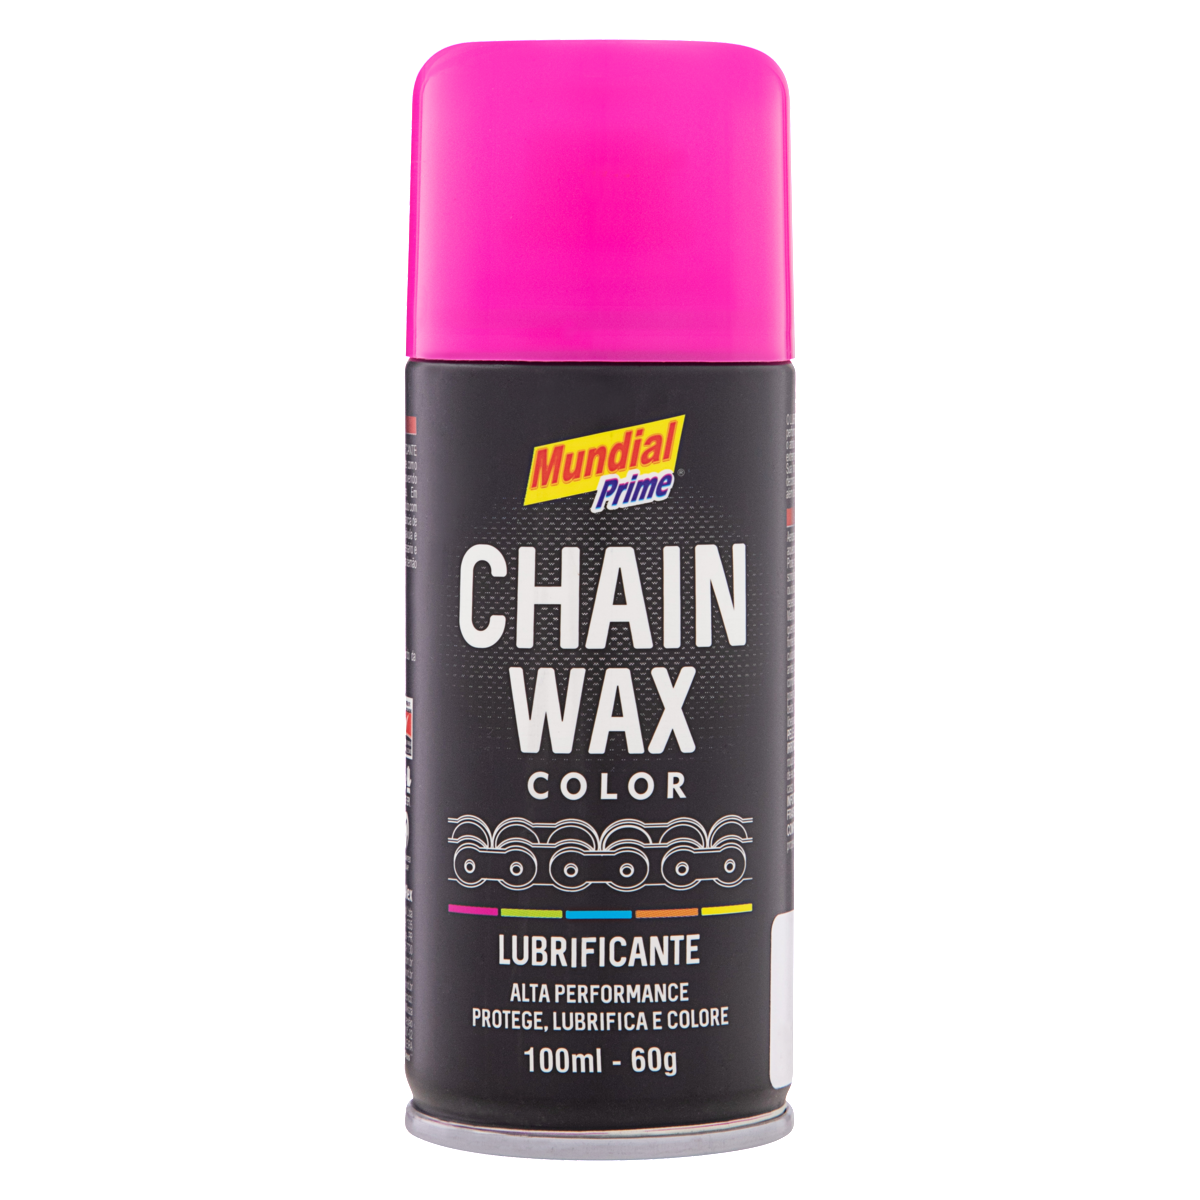 7898567703860 - LUBRIFICANTE SPRAY PINK MUNDIAL PRIME CHAIN WAX COLOR FRASCO 100ML